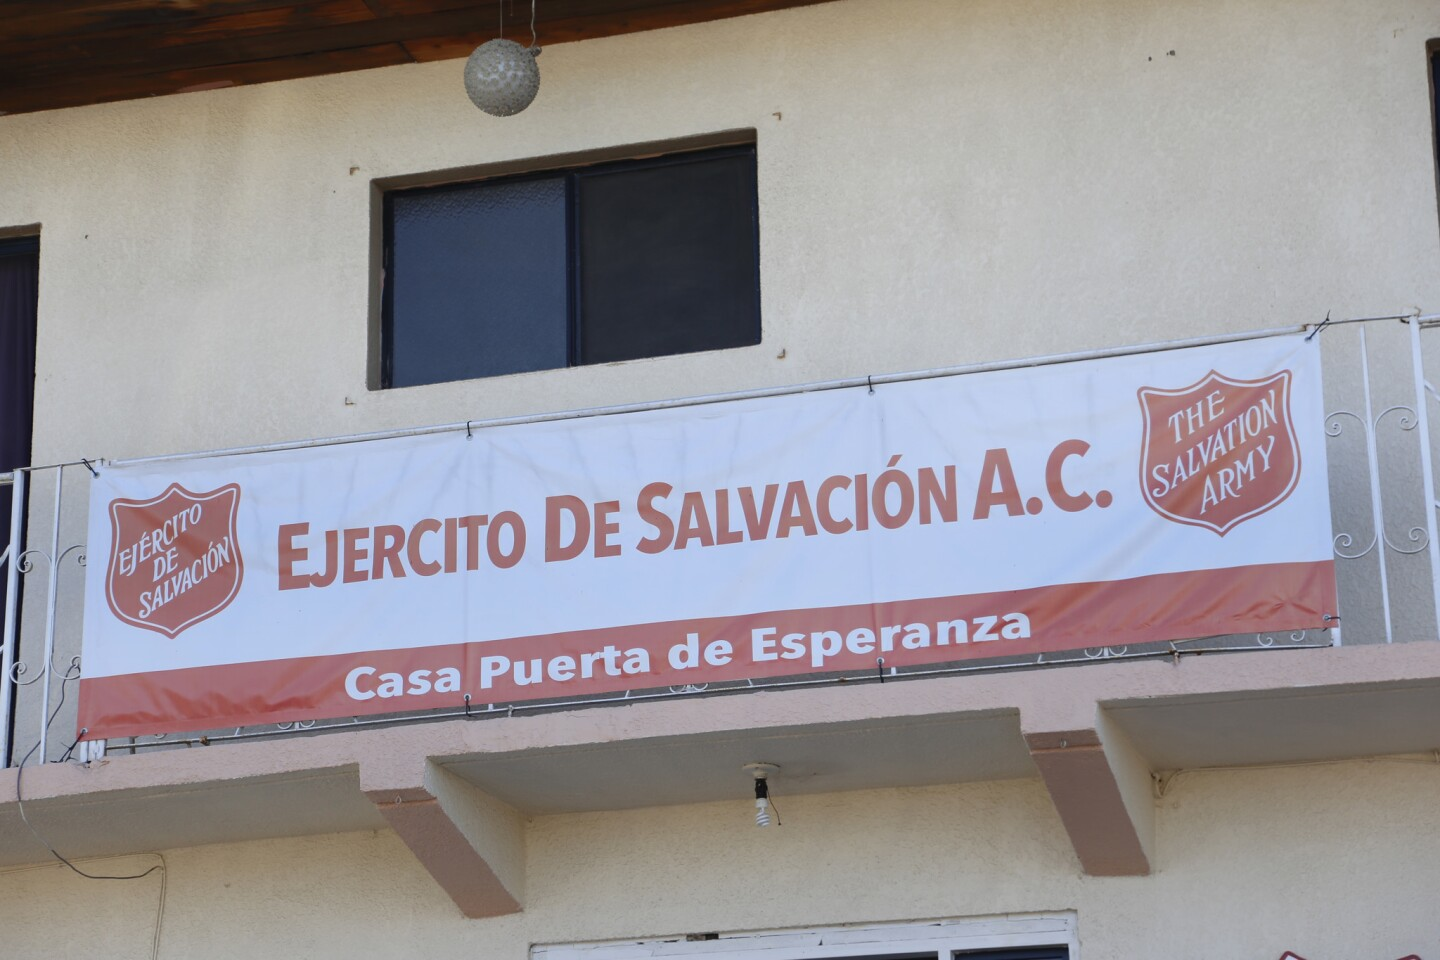 Tijuana, Baja California, Mexico October 19th, 2018 | Casa Puerta de Esperanza is a shelter in Colonia Libertad. The Salvation Army's shelter helps migrants with services and housing. | Alejandro Tamayo © The San Diego Union Tribune 2018